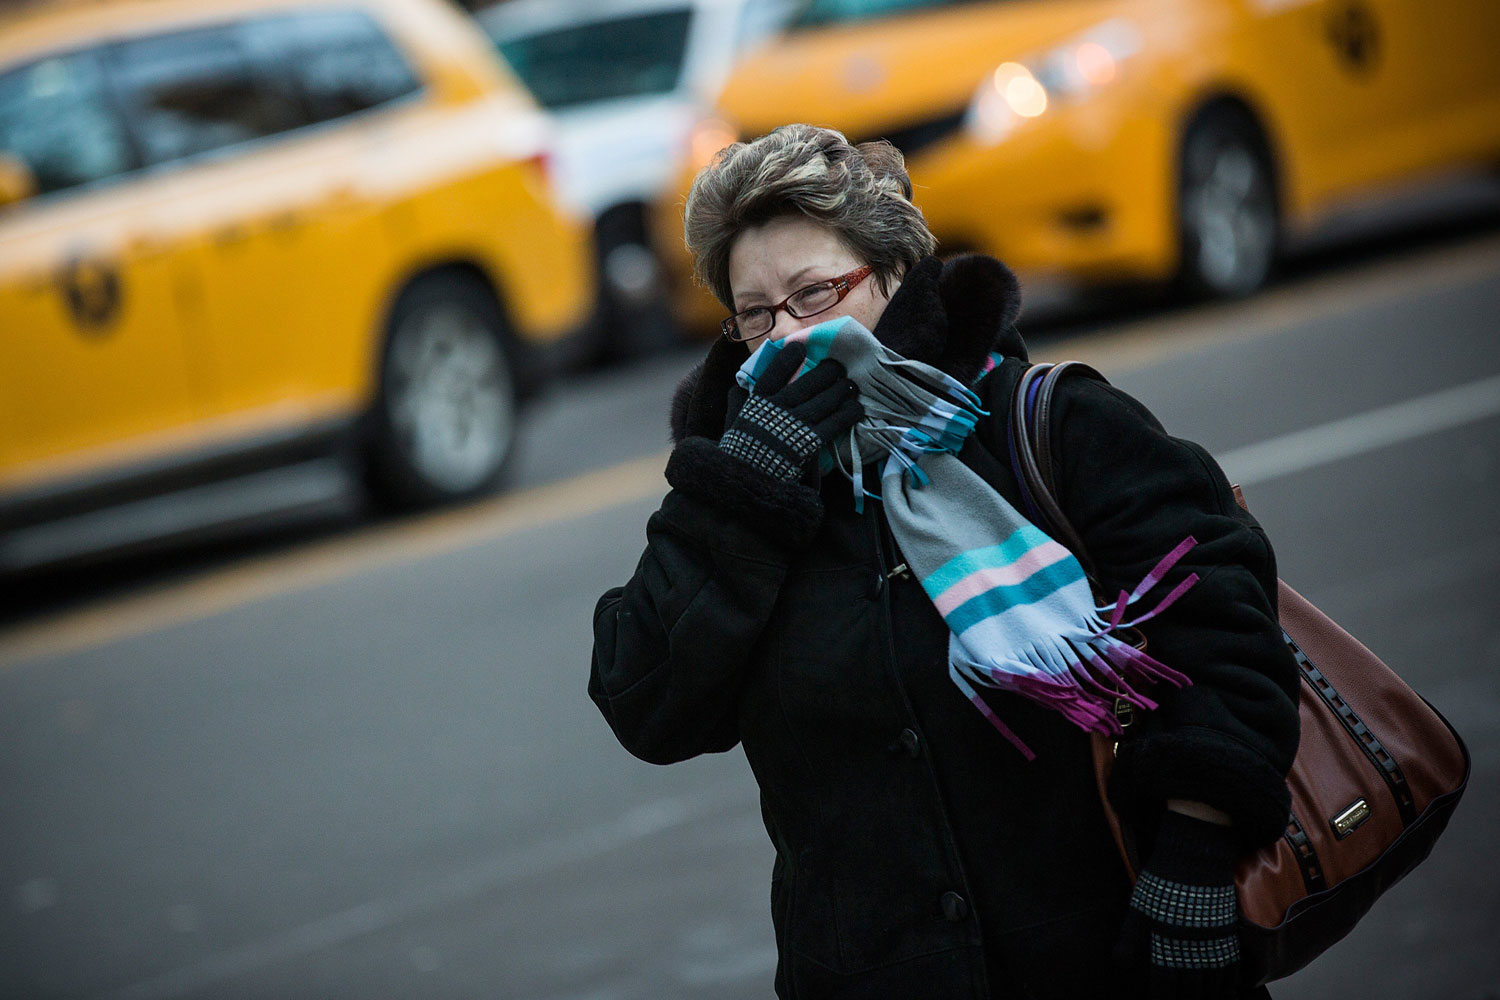 A woman bundles up against the cold on the afternoon of Jan. 8, 2014 in New York City.